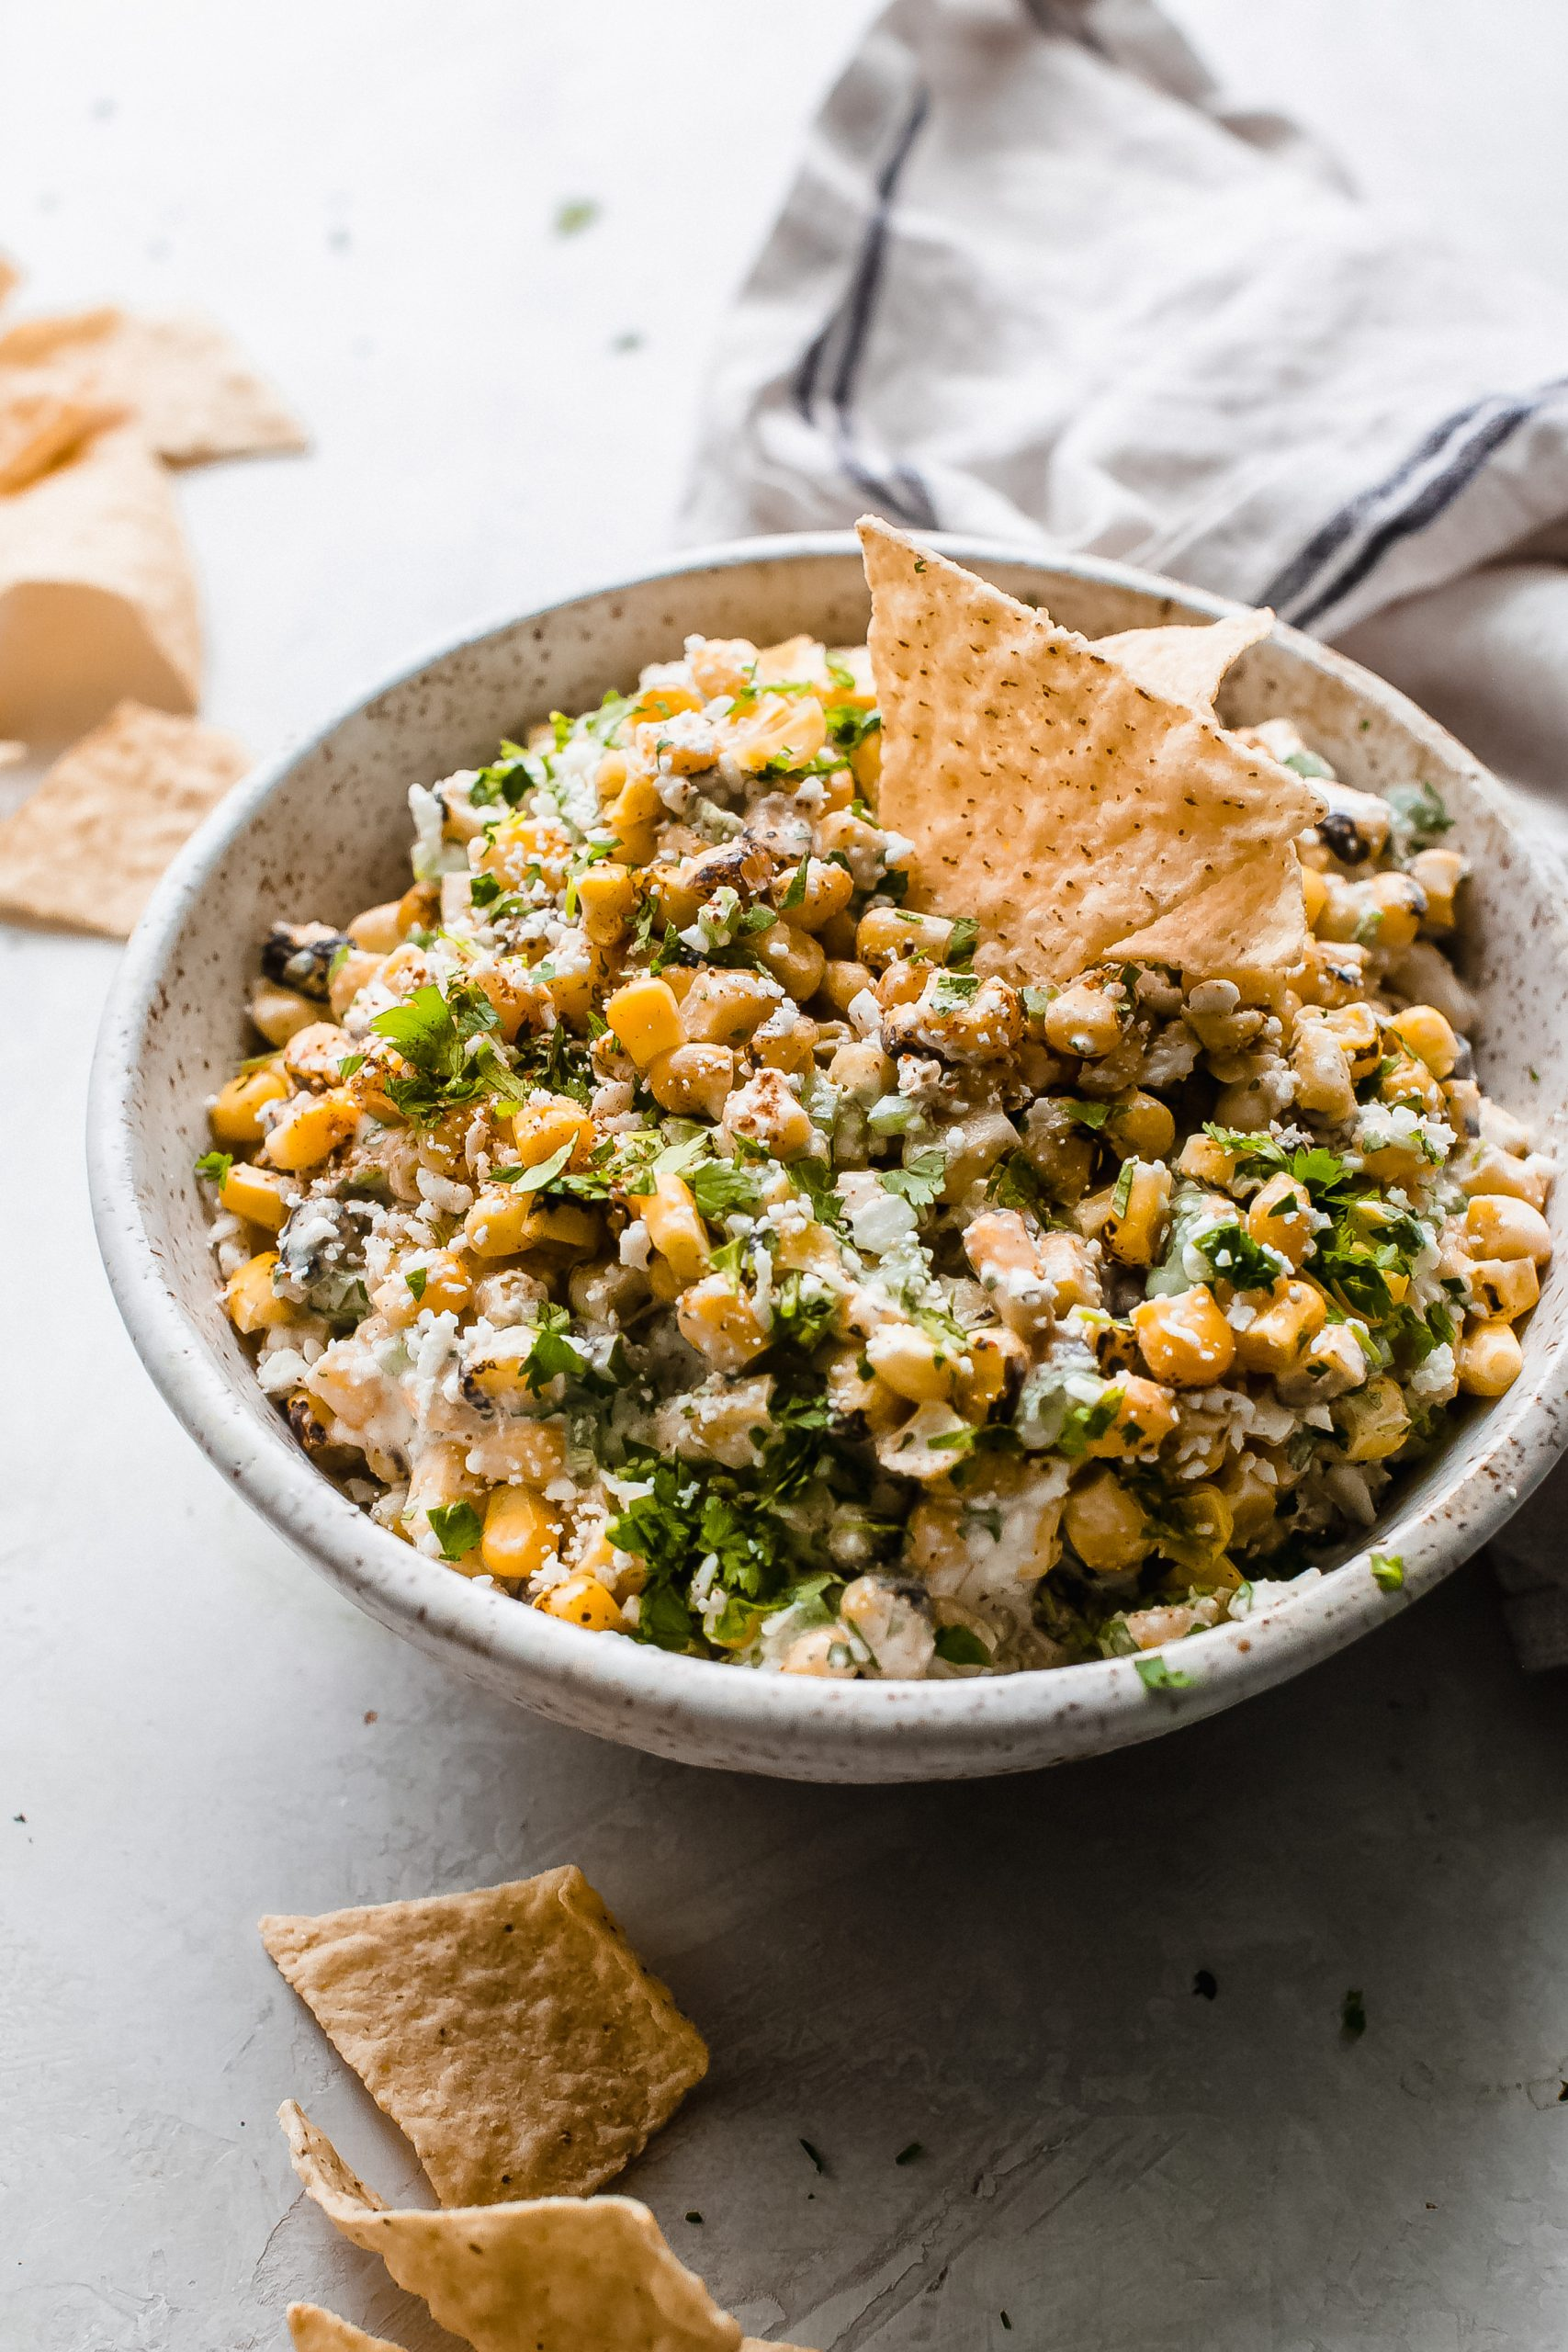 speckled bowl with Mexican corn dip, with tortilla chips standing in bowl